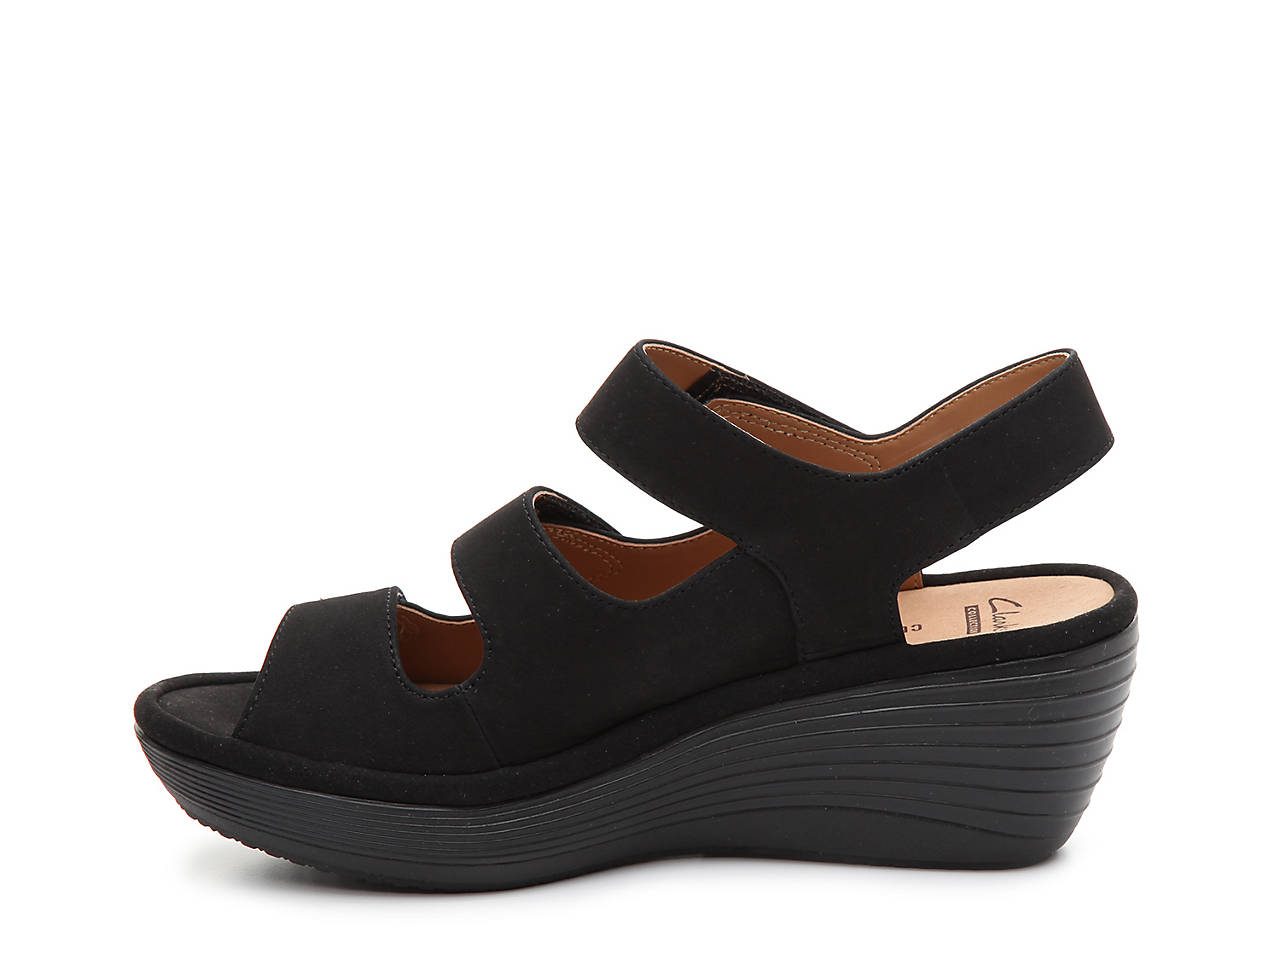 cae8d8d7a6db Clarks Reedly Juno Wedge Sandal Women s Shoes